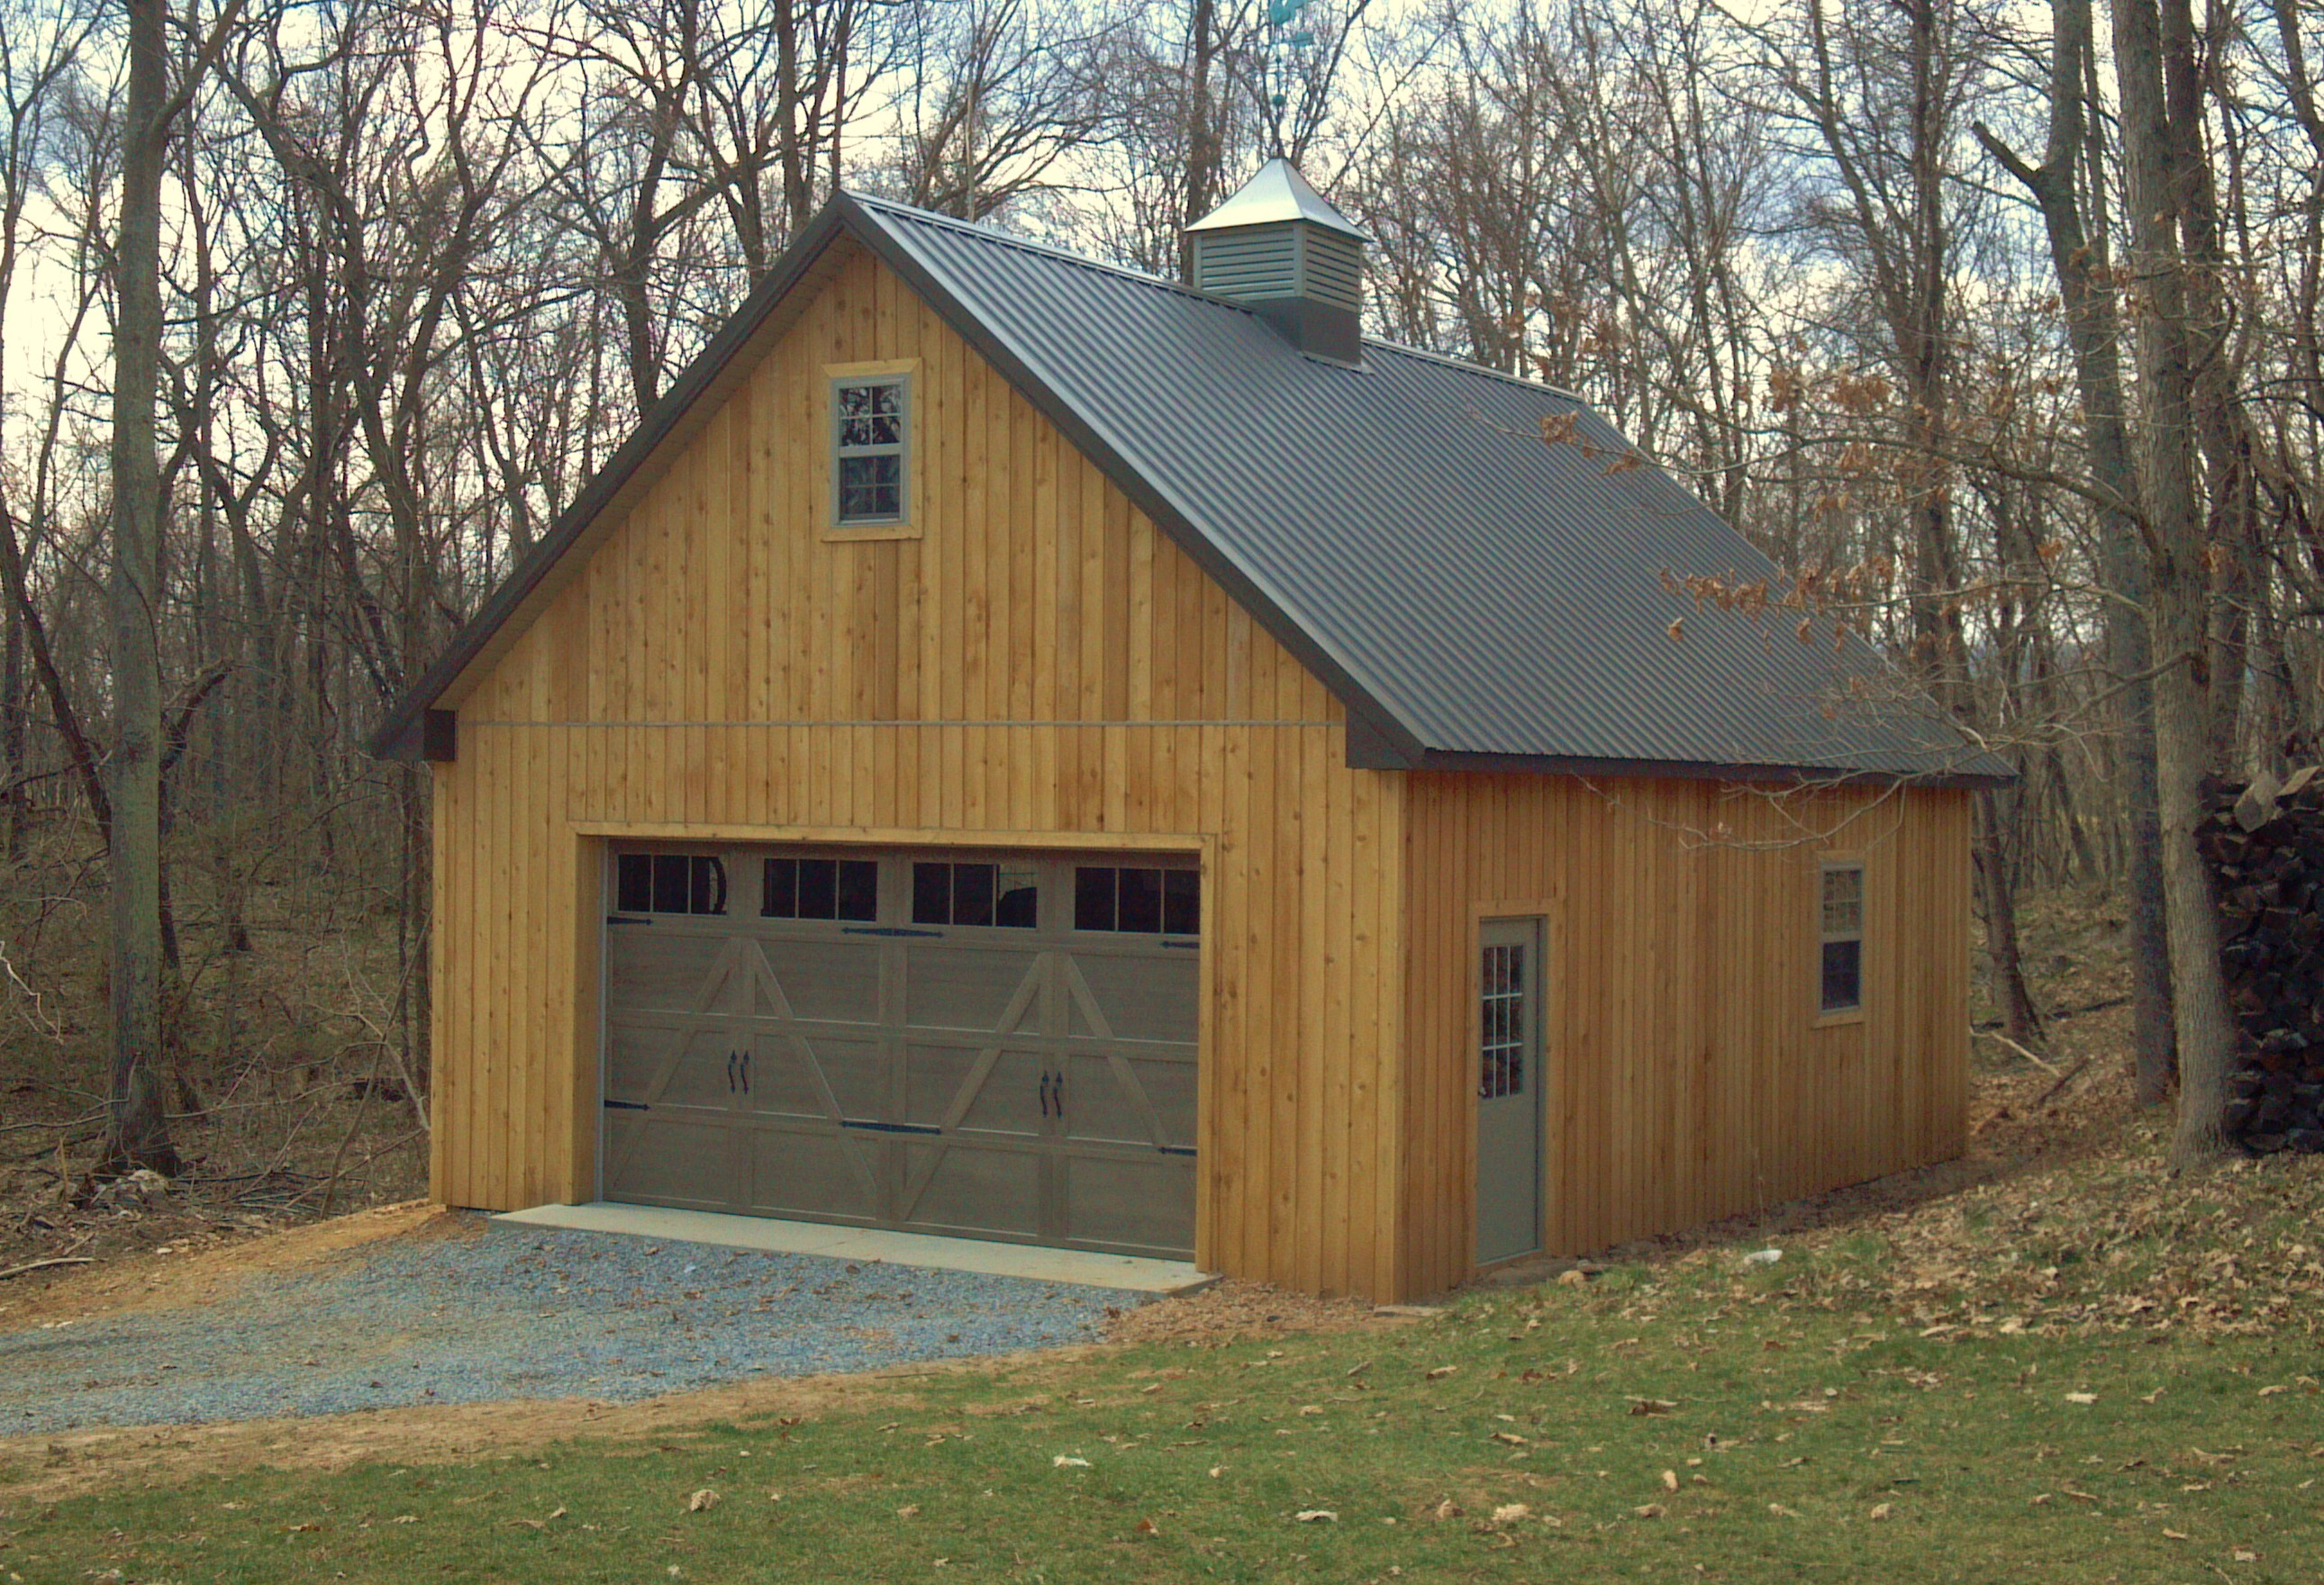 24 x 32 pole barn plans joy studio design gallery best for 26 x 36 garage